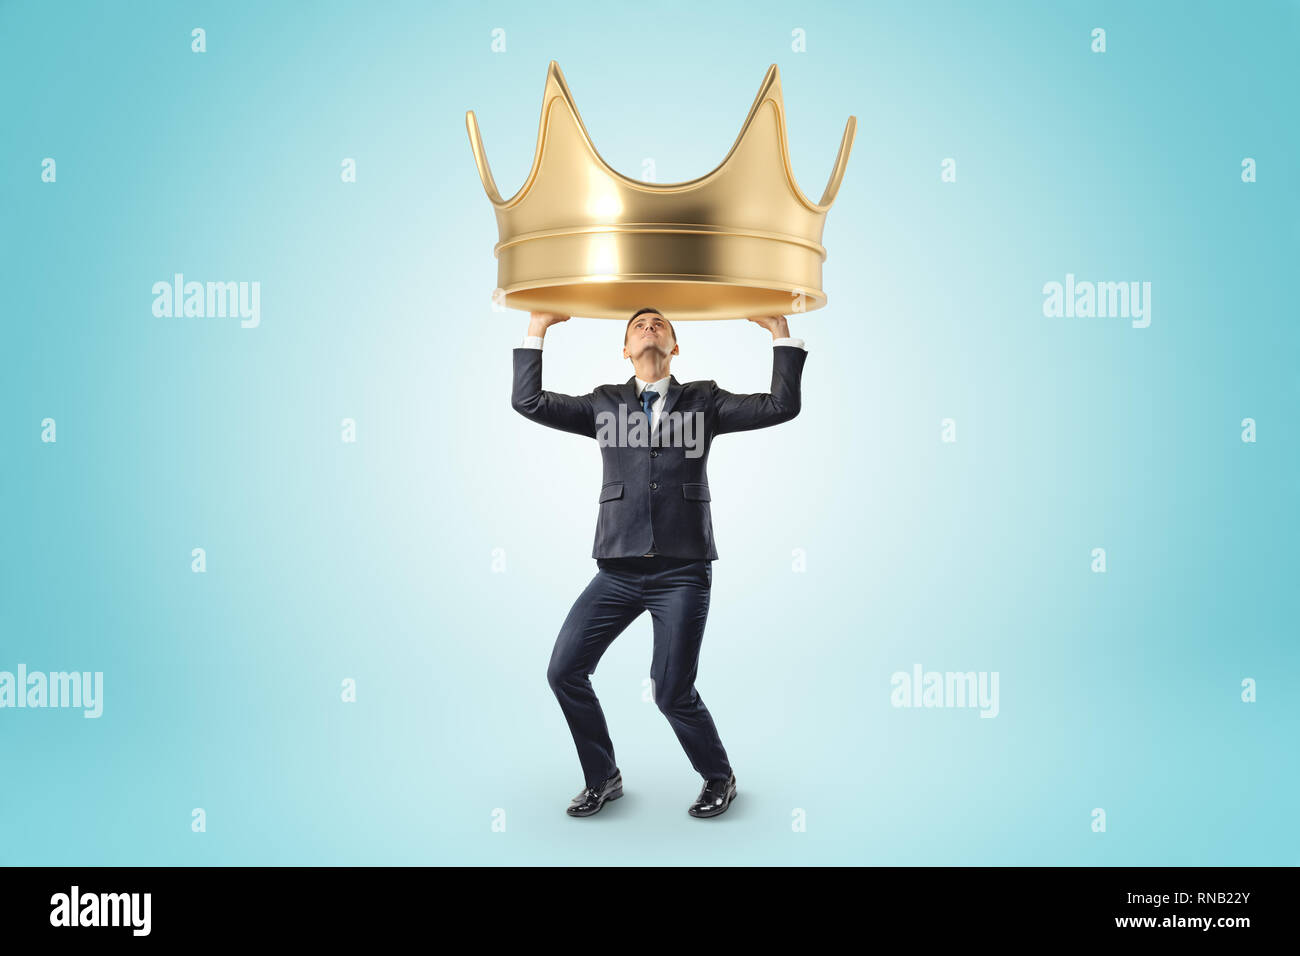 Young businessman holding heady golden crown above head on blue background - Stock Image